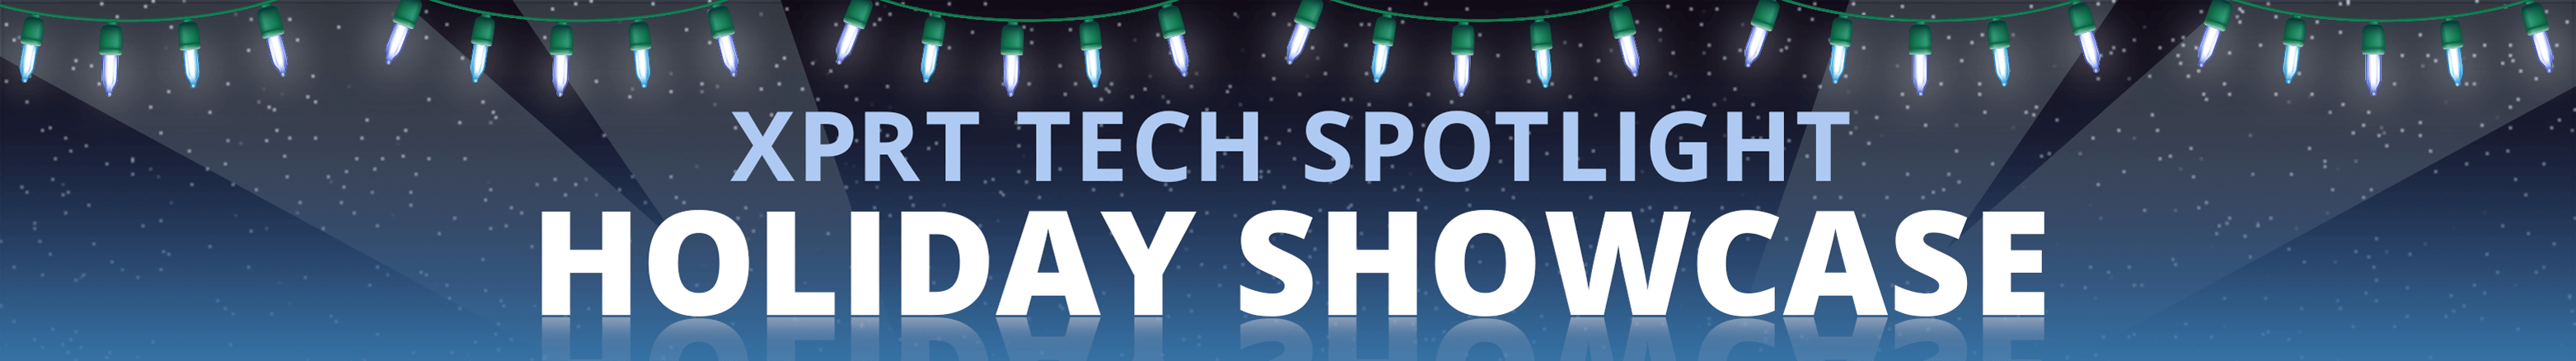 XPRT Holiday Buying Guide Showcase banner